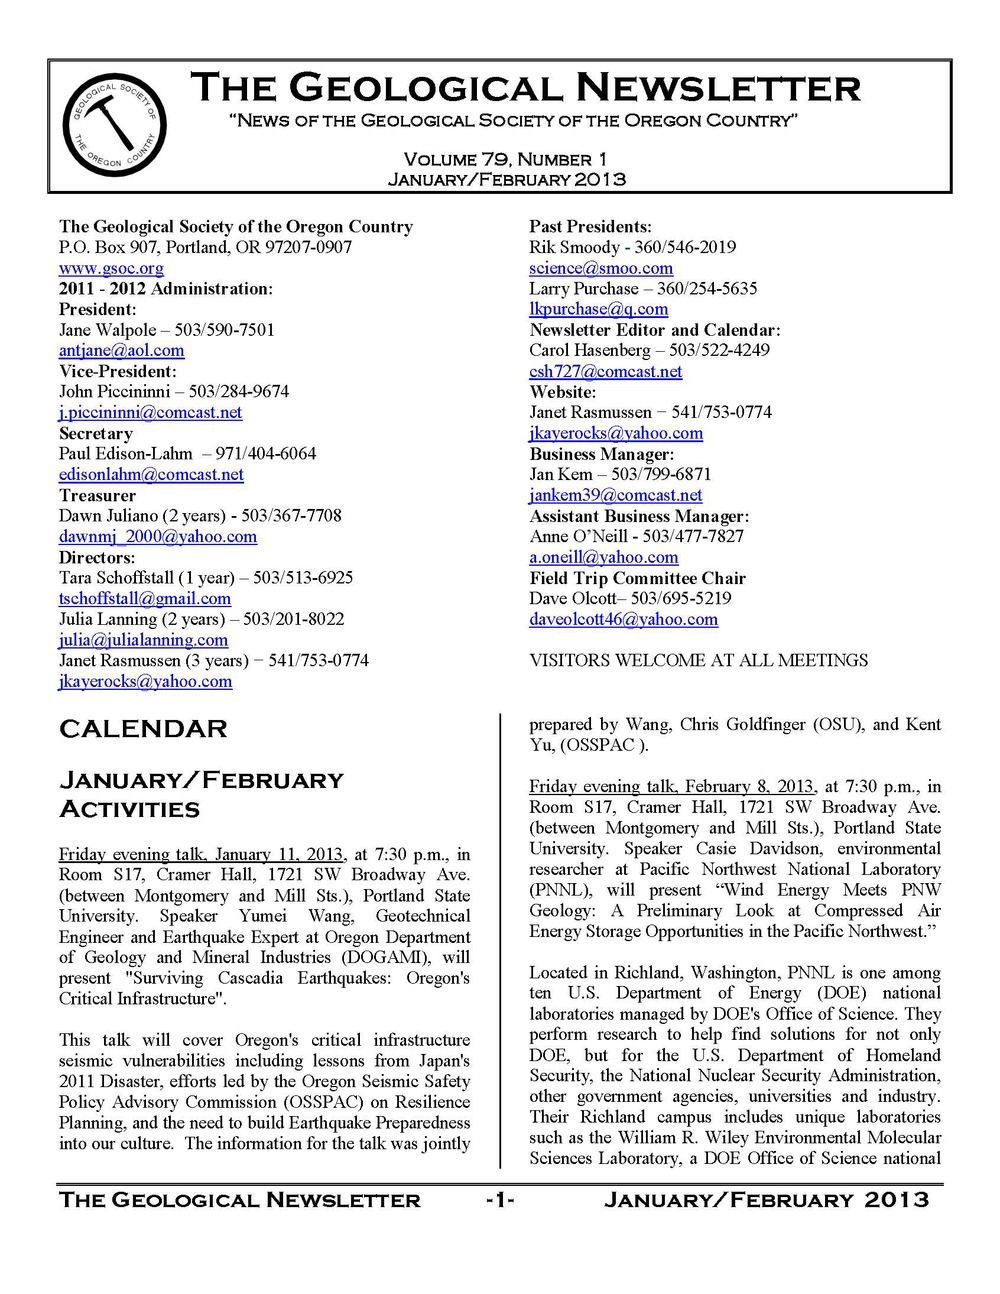 Newsletters 1995 to future (2024) — Geological Society of